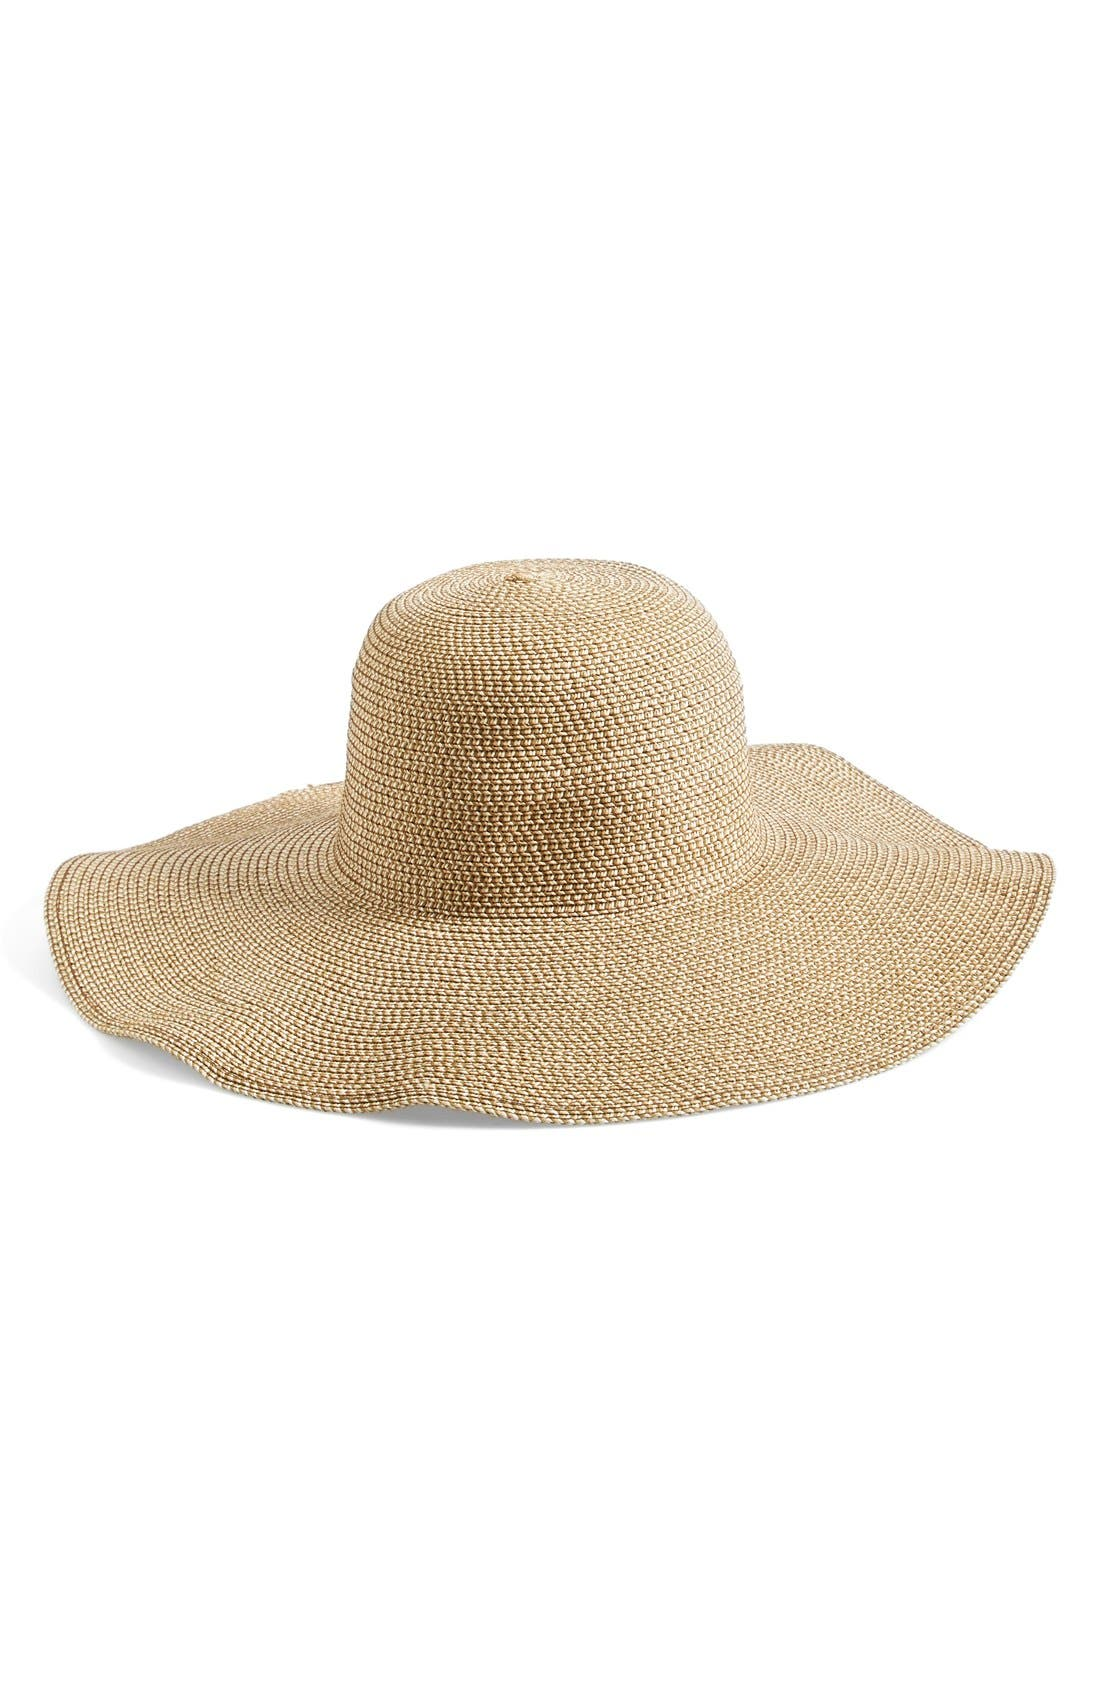 Floppy Straw Look Hat,                         Main,                         color, Natural